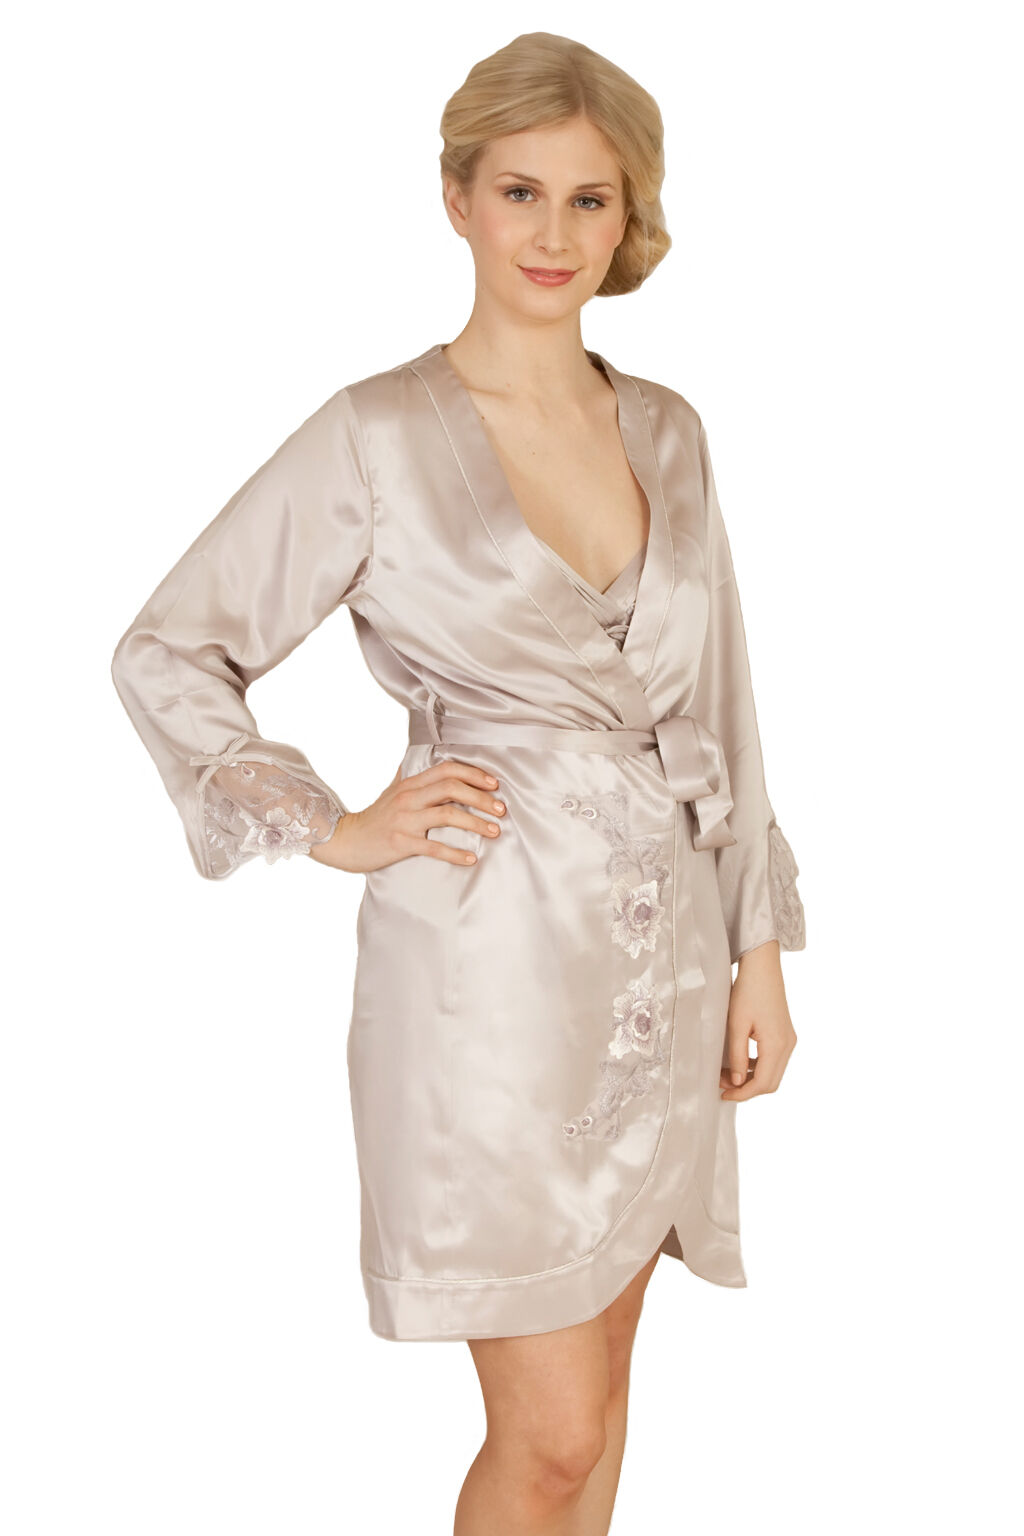 Luxurious Pure Silk Absolute Glamour Dressing Gown NEW & Gift Box SizeL